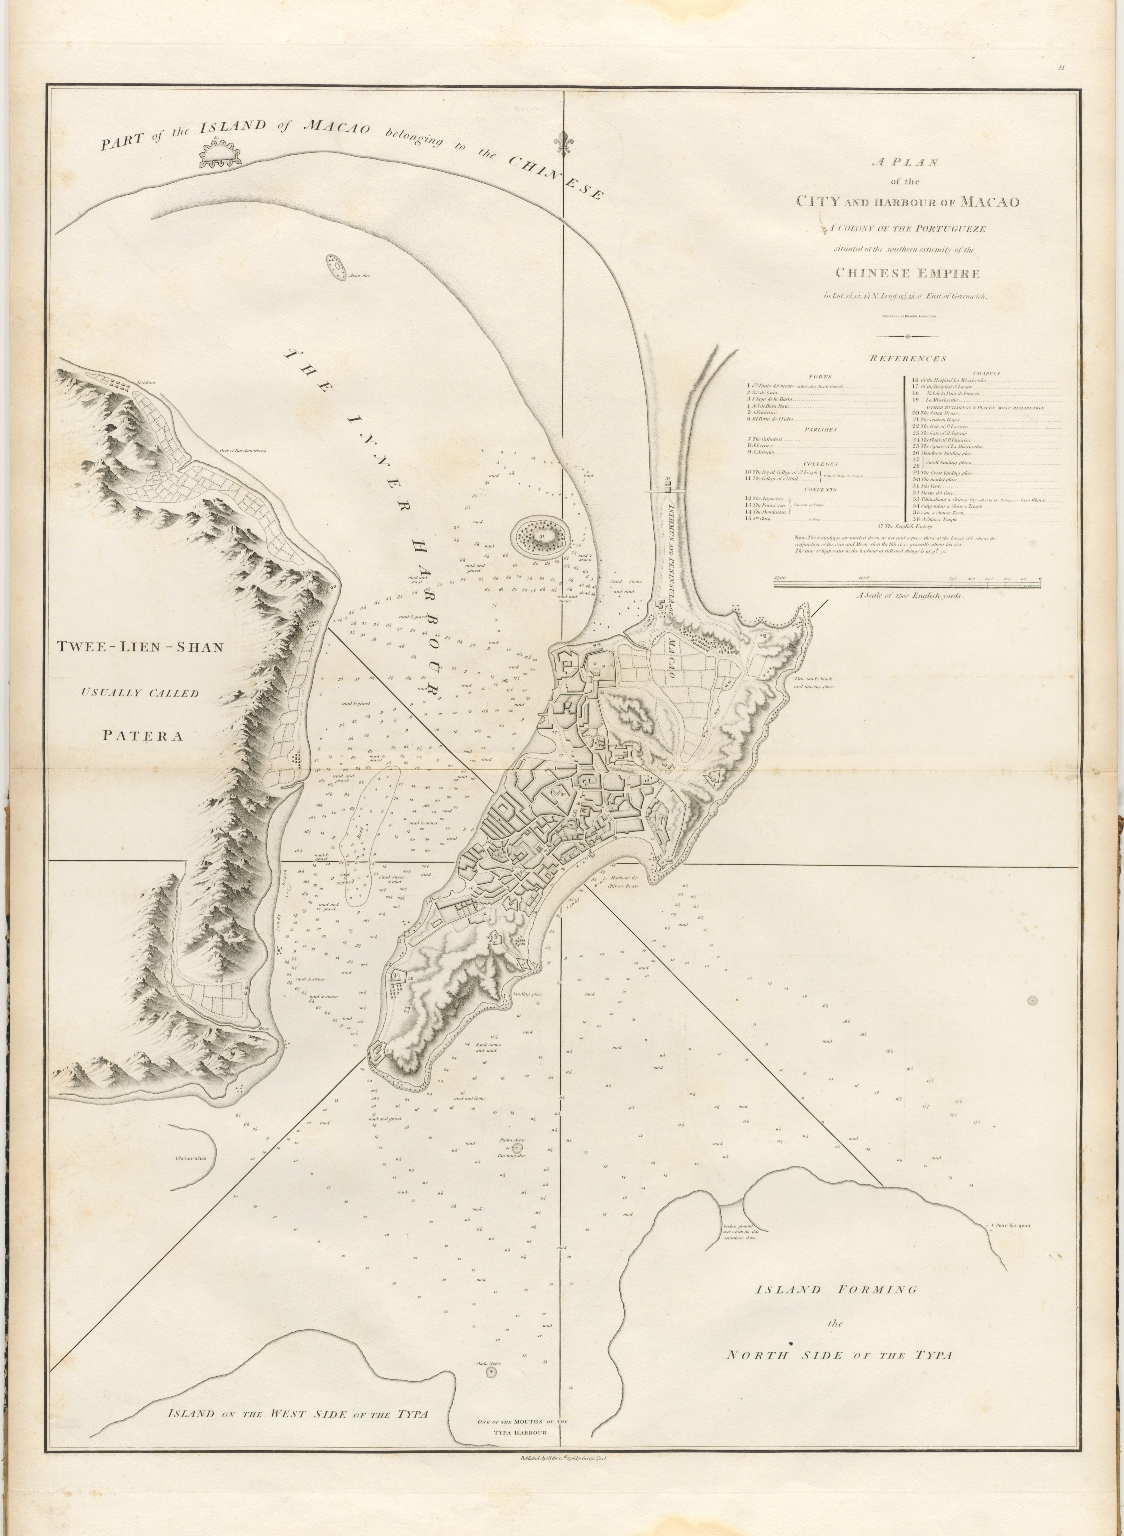 A plan of the city and harbour of Macao : a colony of the Portugueze, situated at the southern extremity of the Chinese Empire in Lat. 22 ⁰12ʹ44ʺ N., long. 113°35ʹ0ʺ east of Greenwich